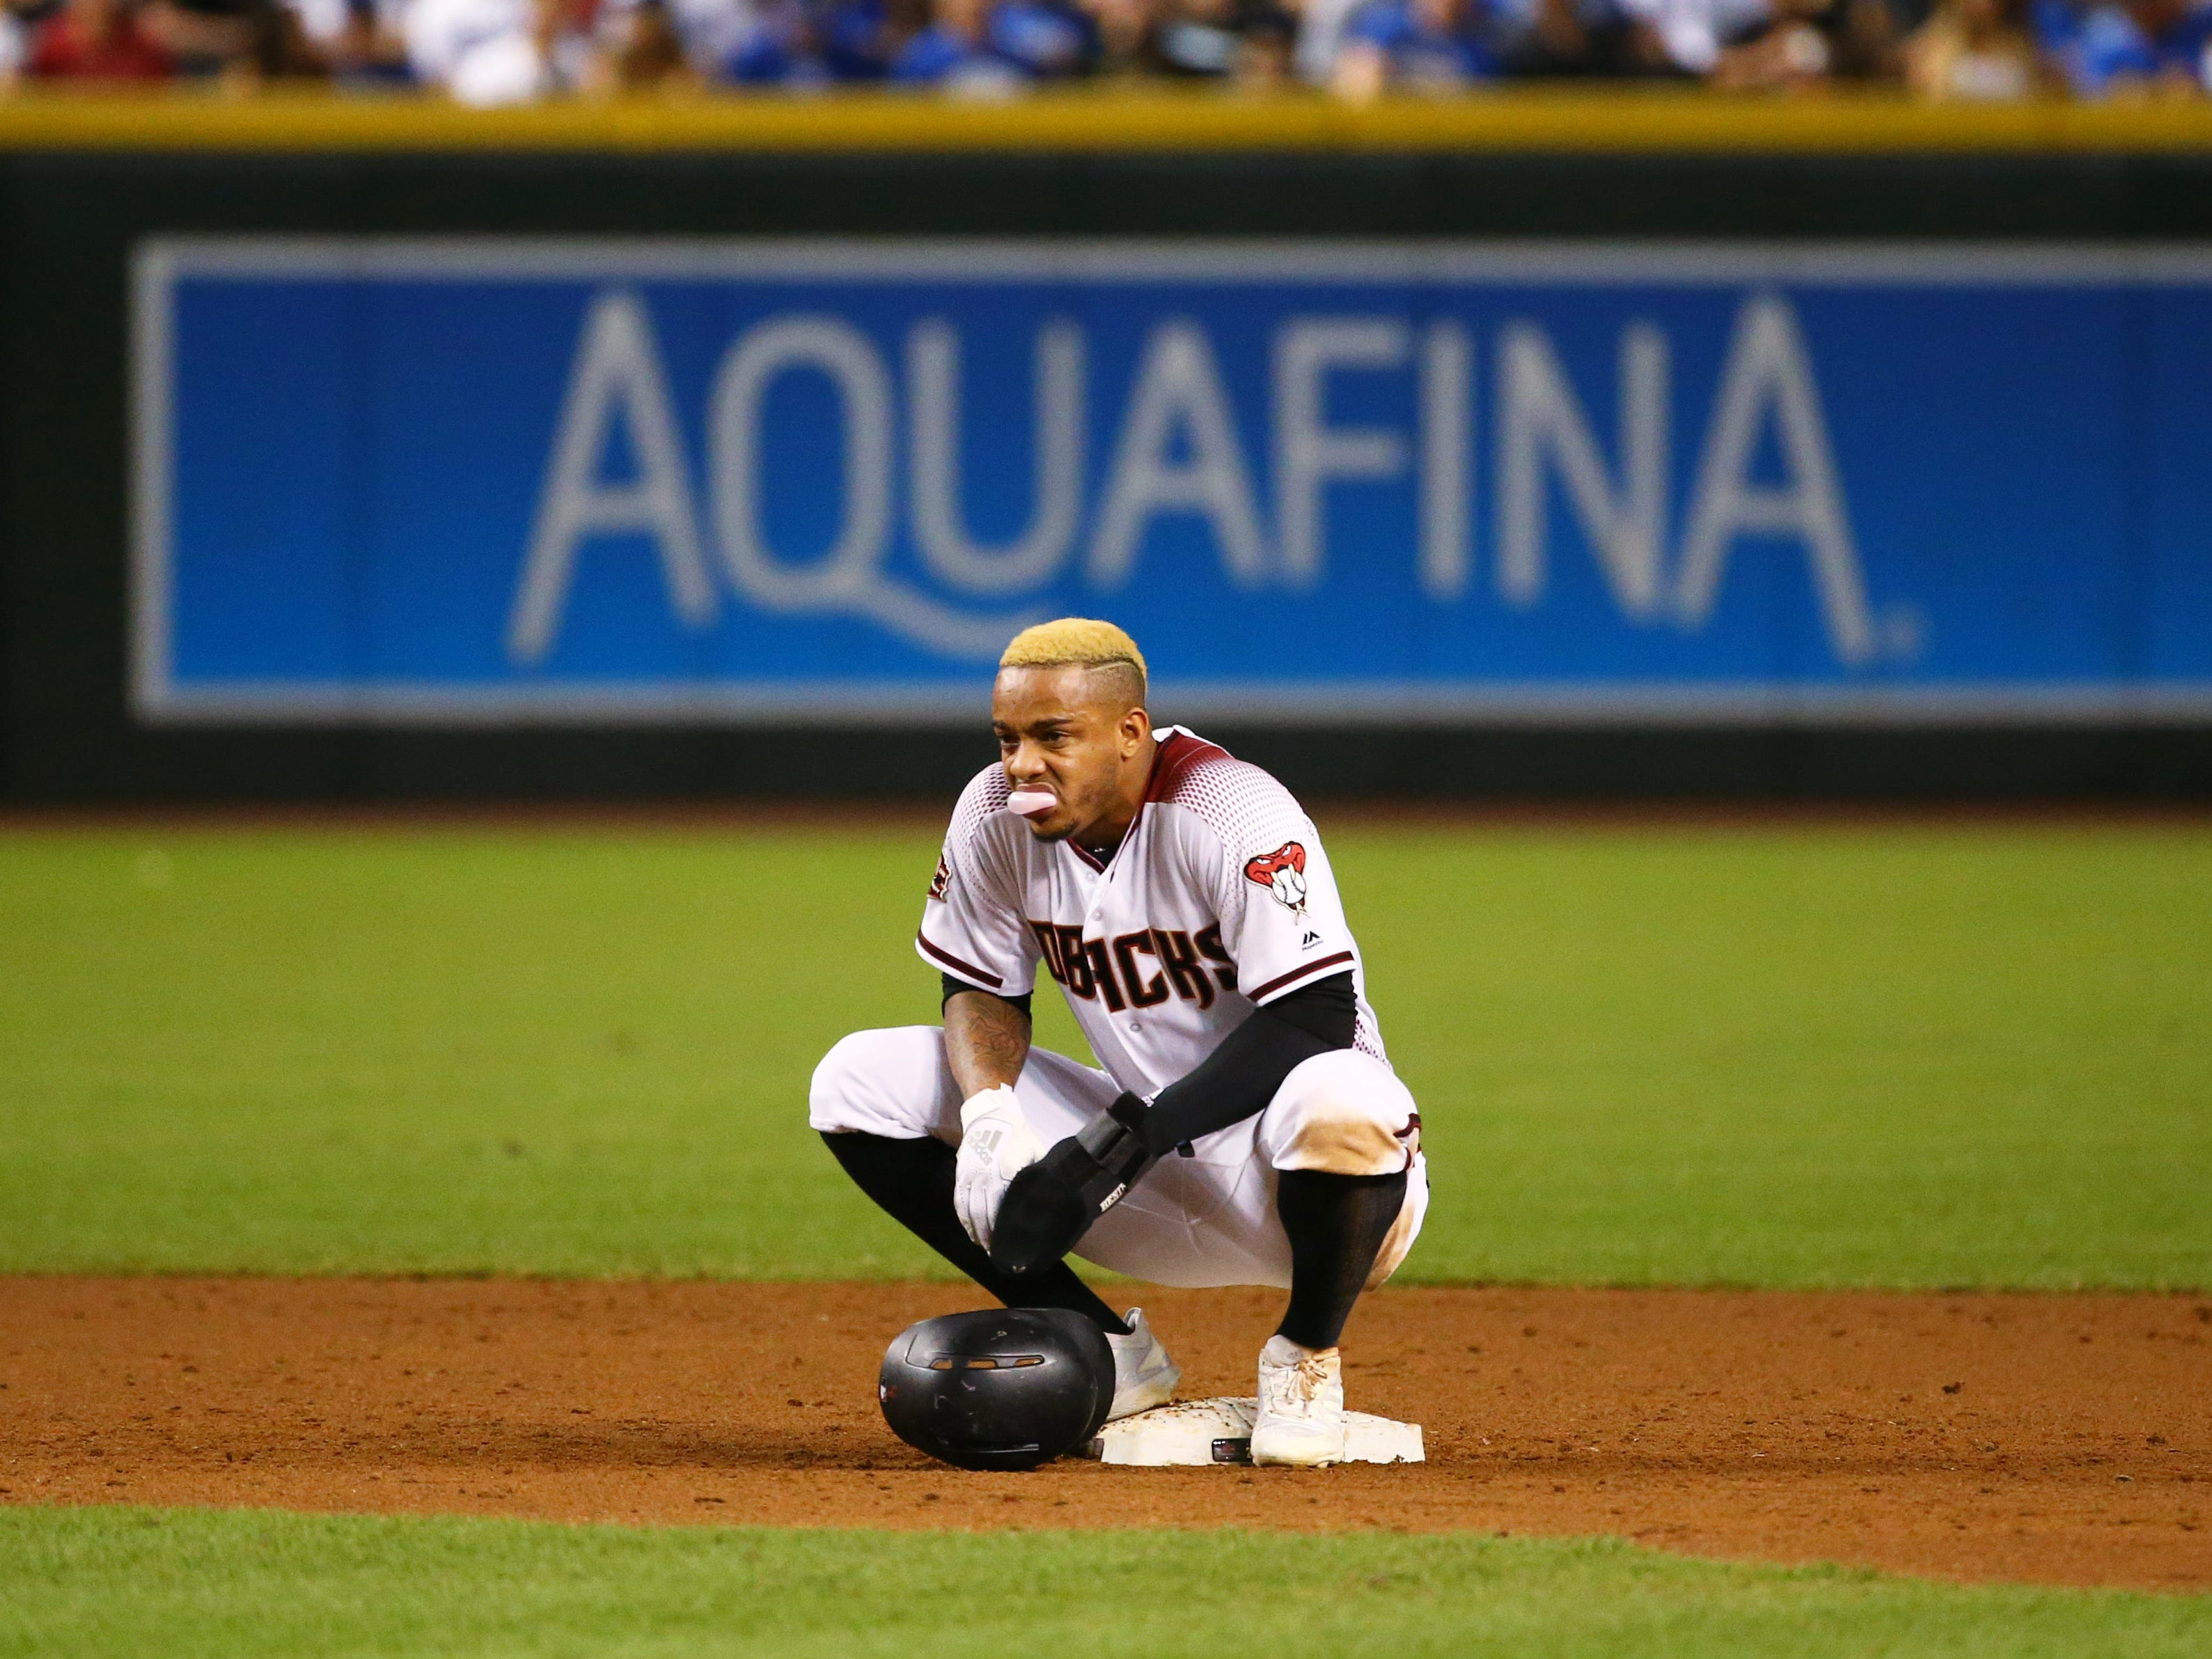 Arizona Diamondbacks 	Ketel Marte reacts during a pitching change by the Los Angeles Dodgers in the second inning on Sep. 26, 2018, at Chase Field in Phoenix, Ariz.